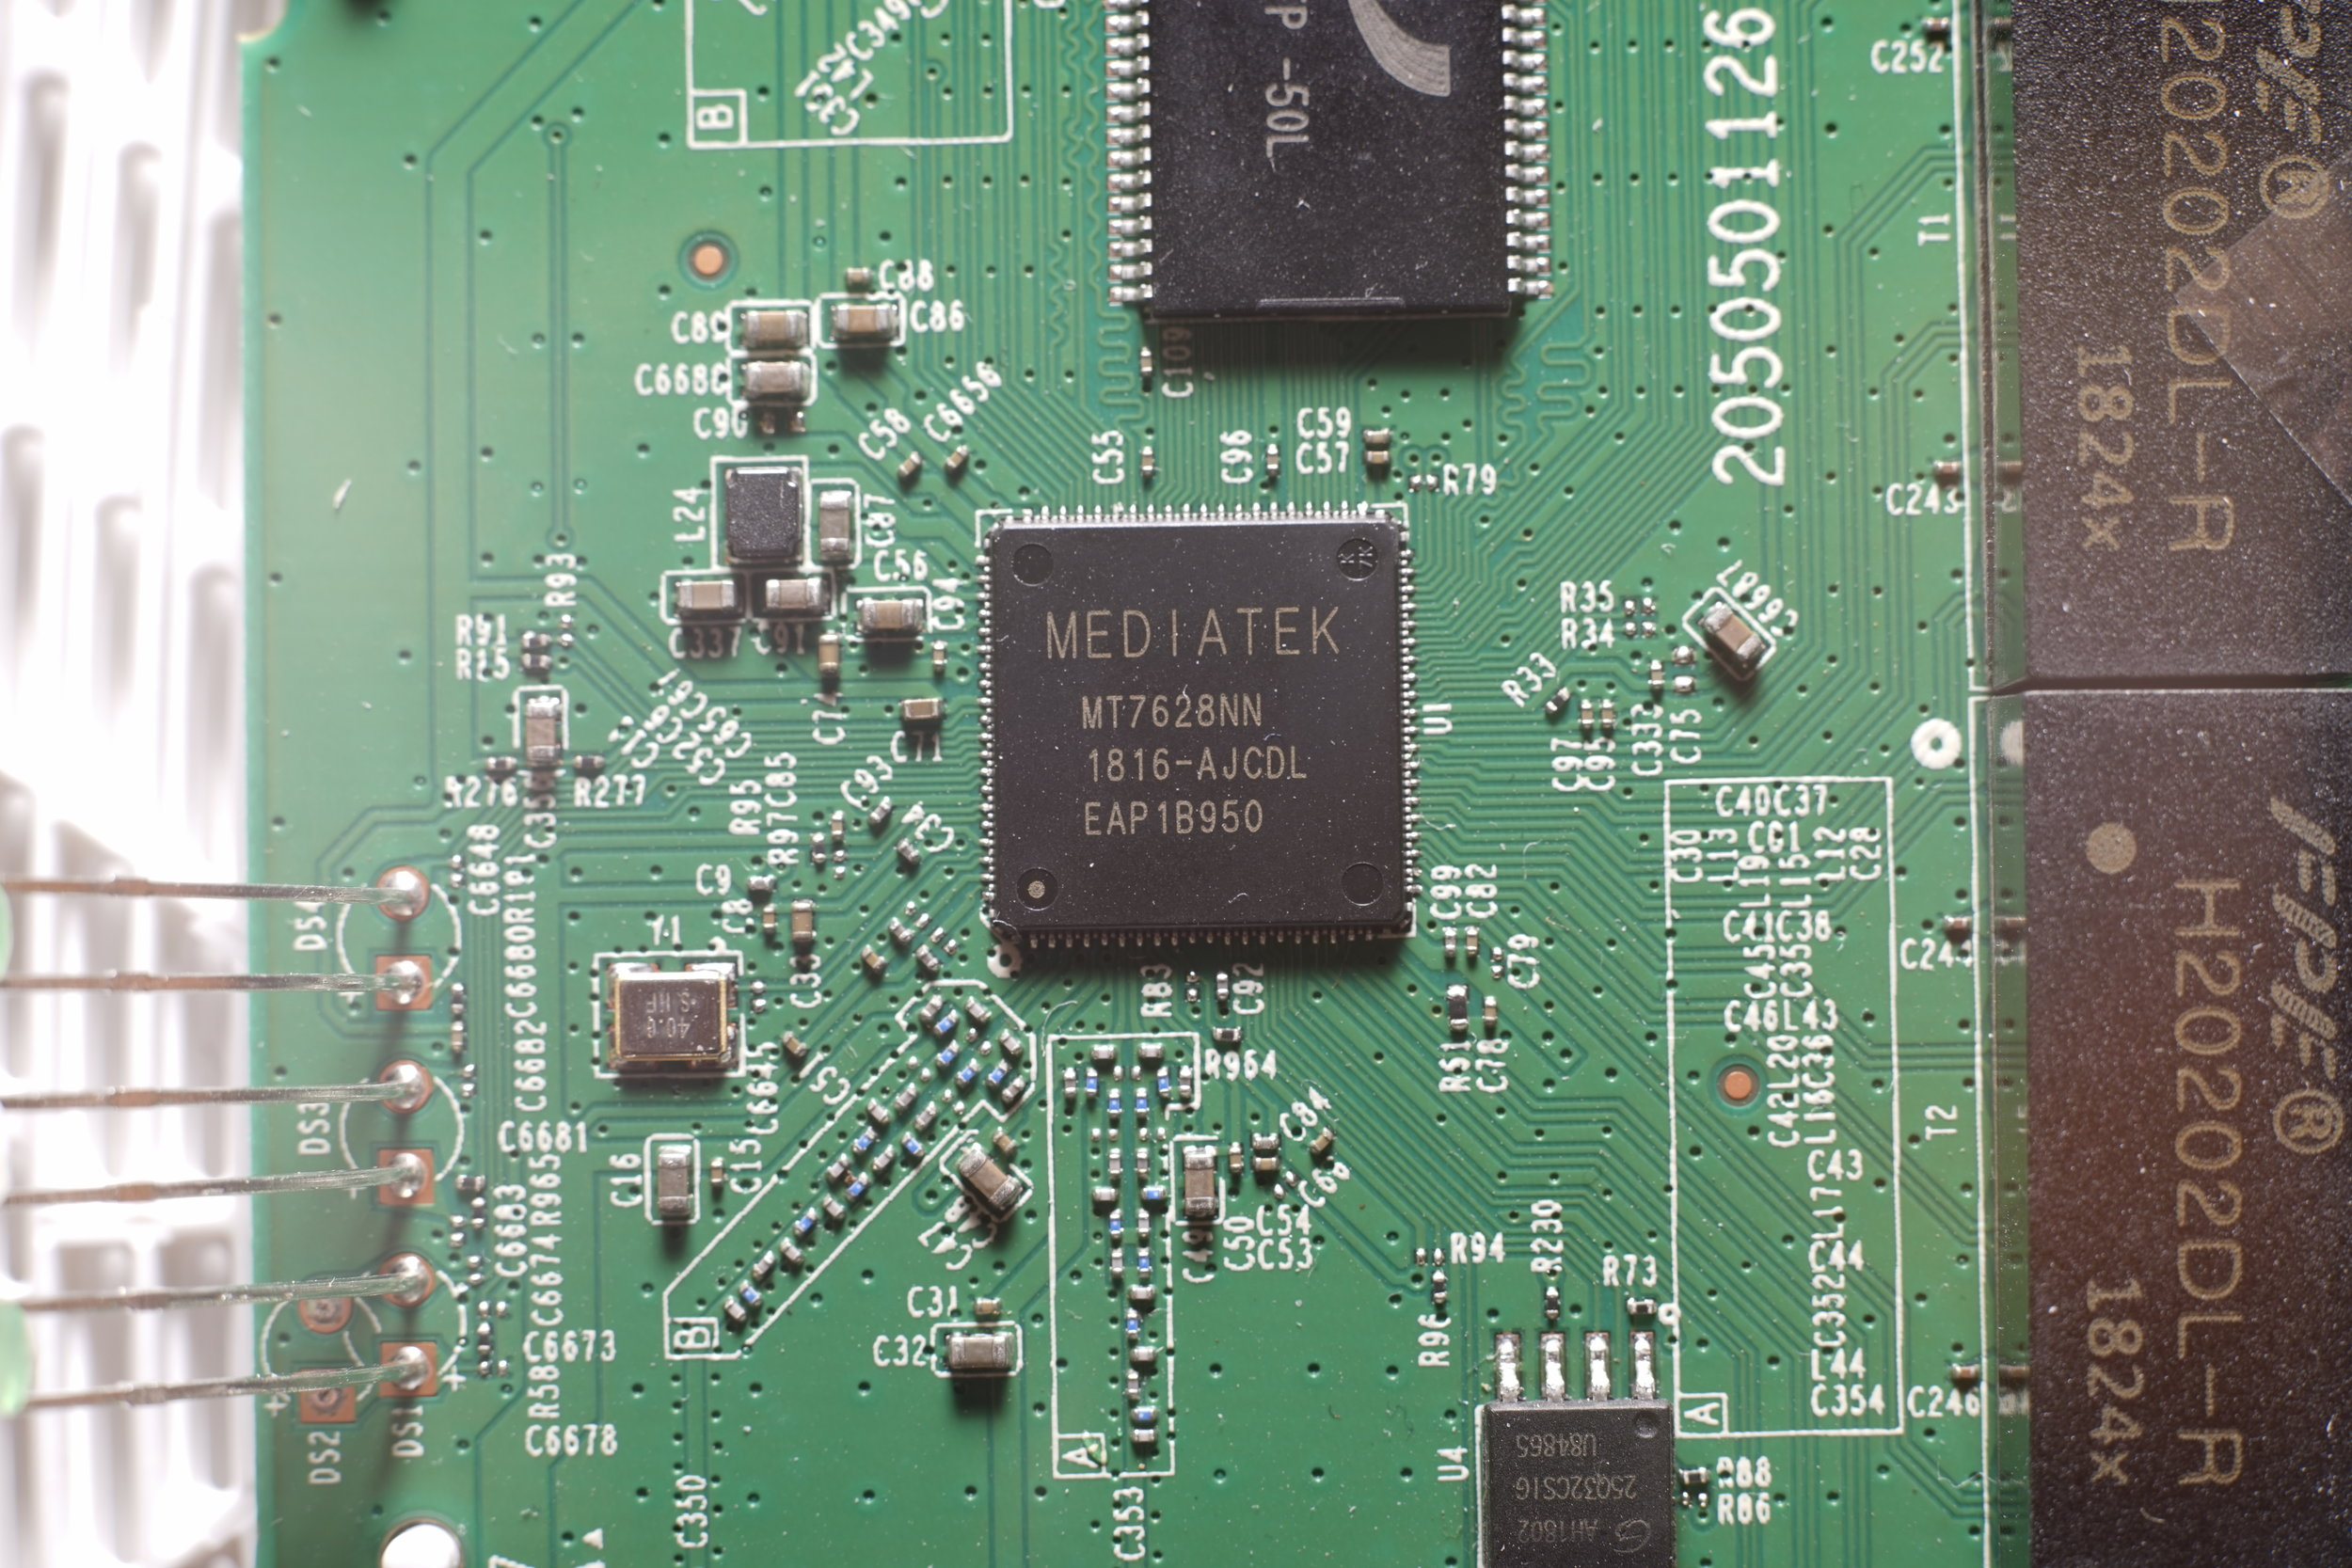 Figure 4 - Close up view of the MEDIATEK MT7628NN SoC